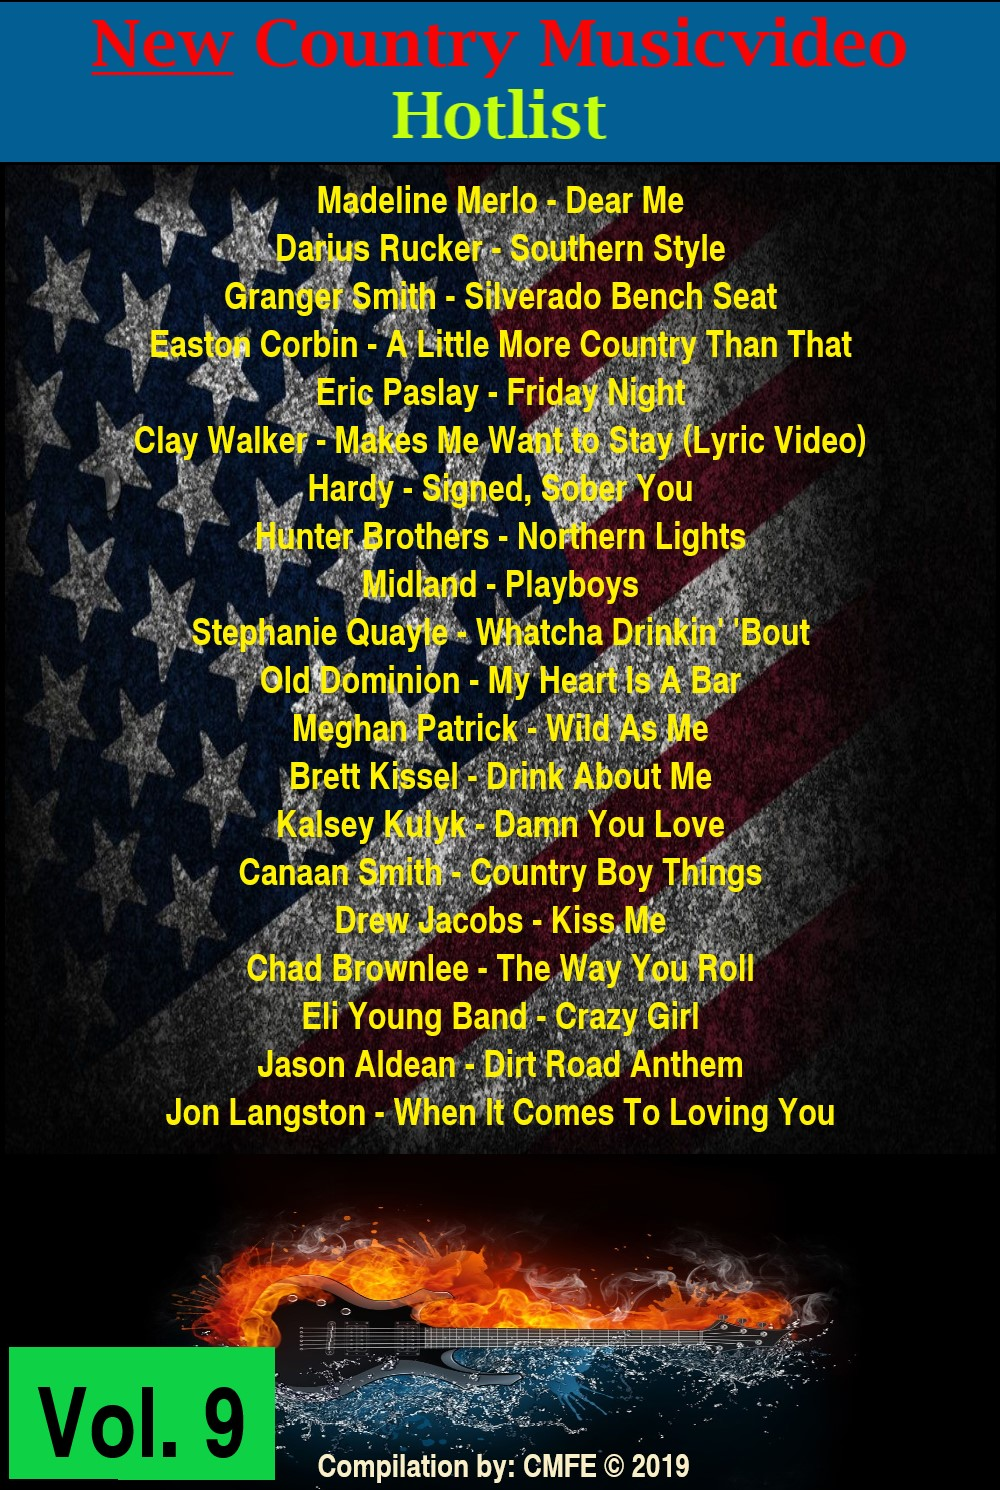 (New!) Country Musicvideo Hotlist Vol. 9